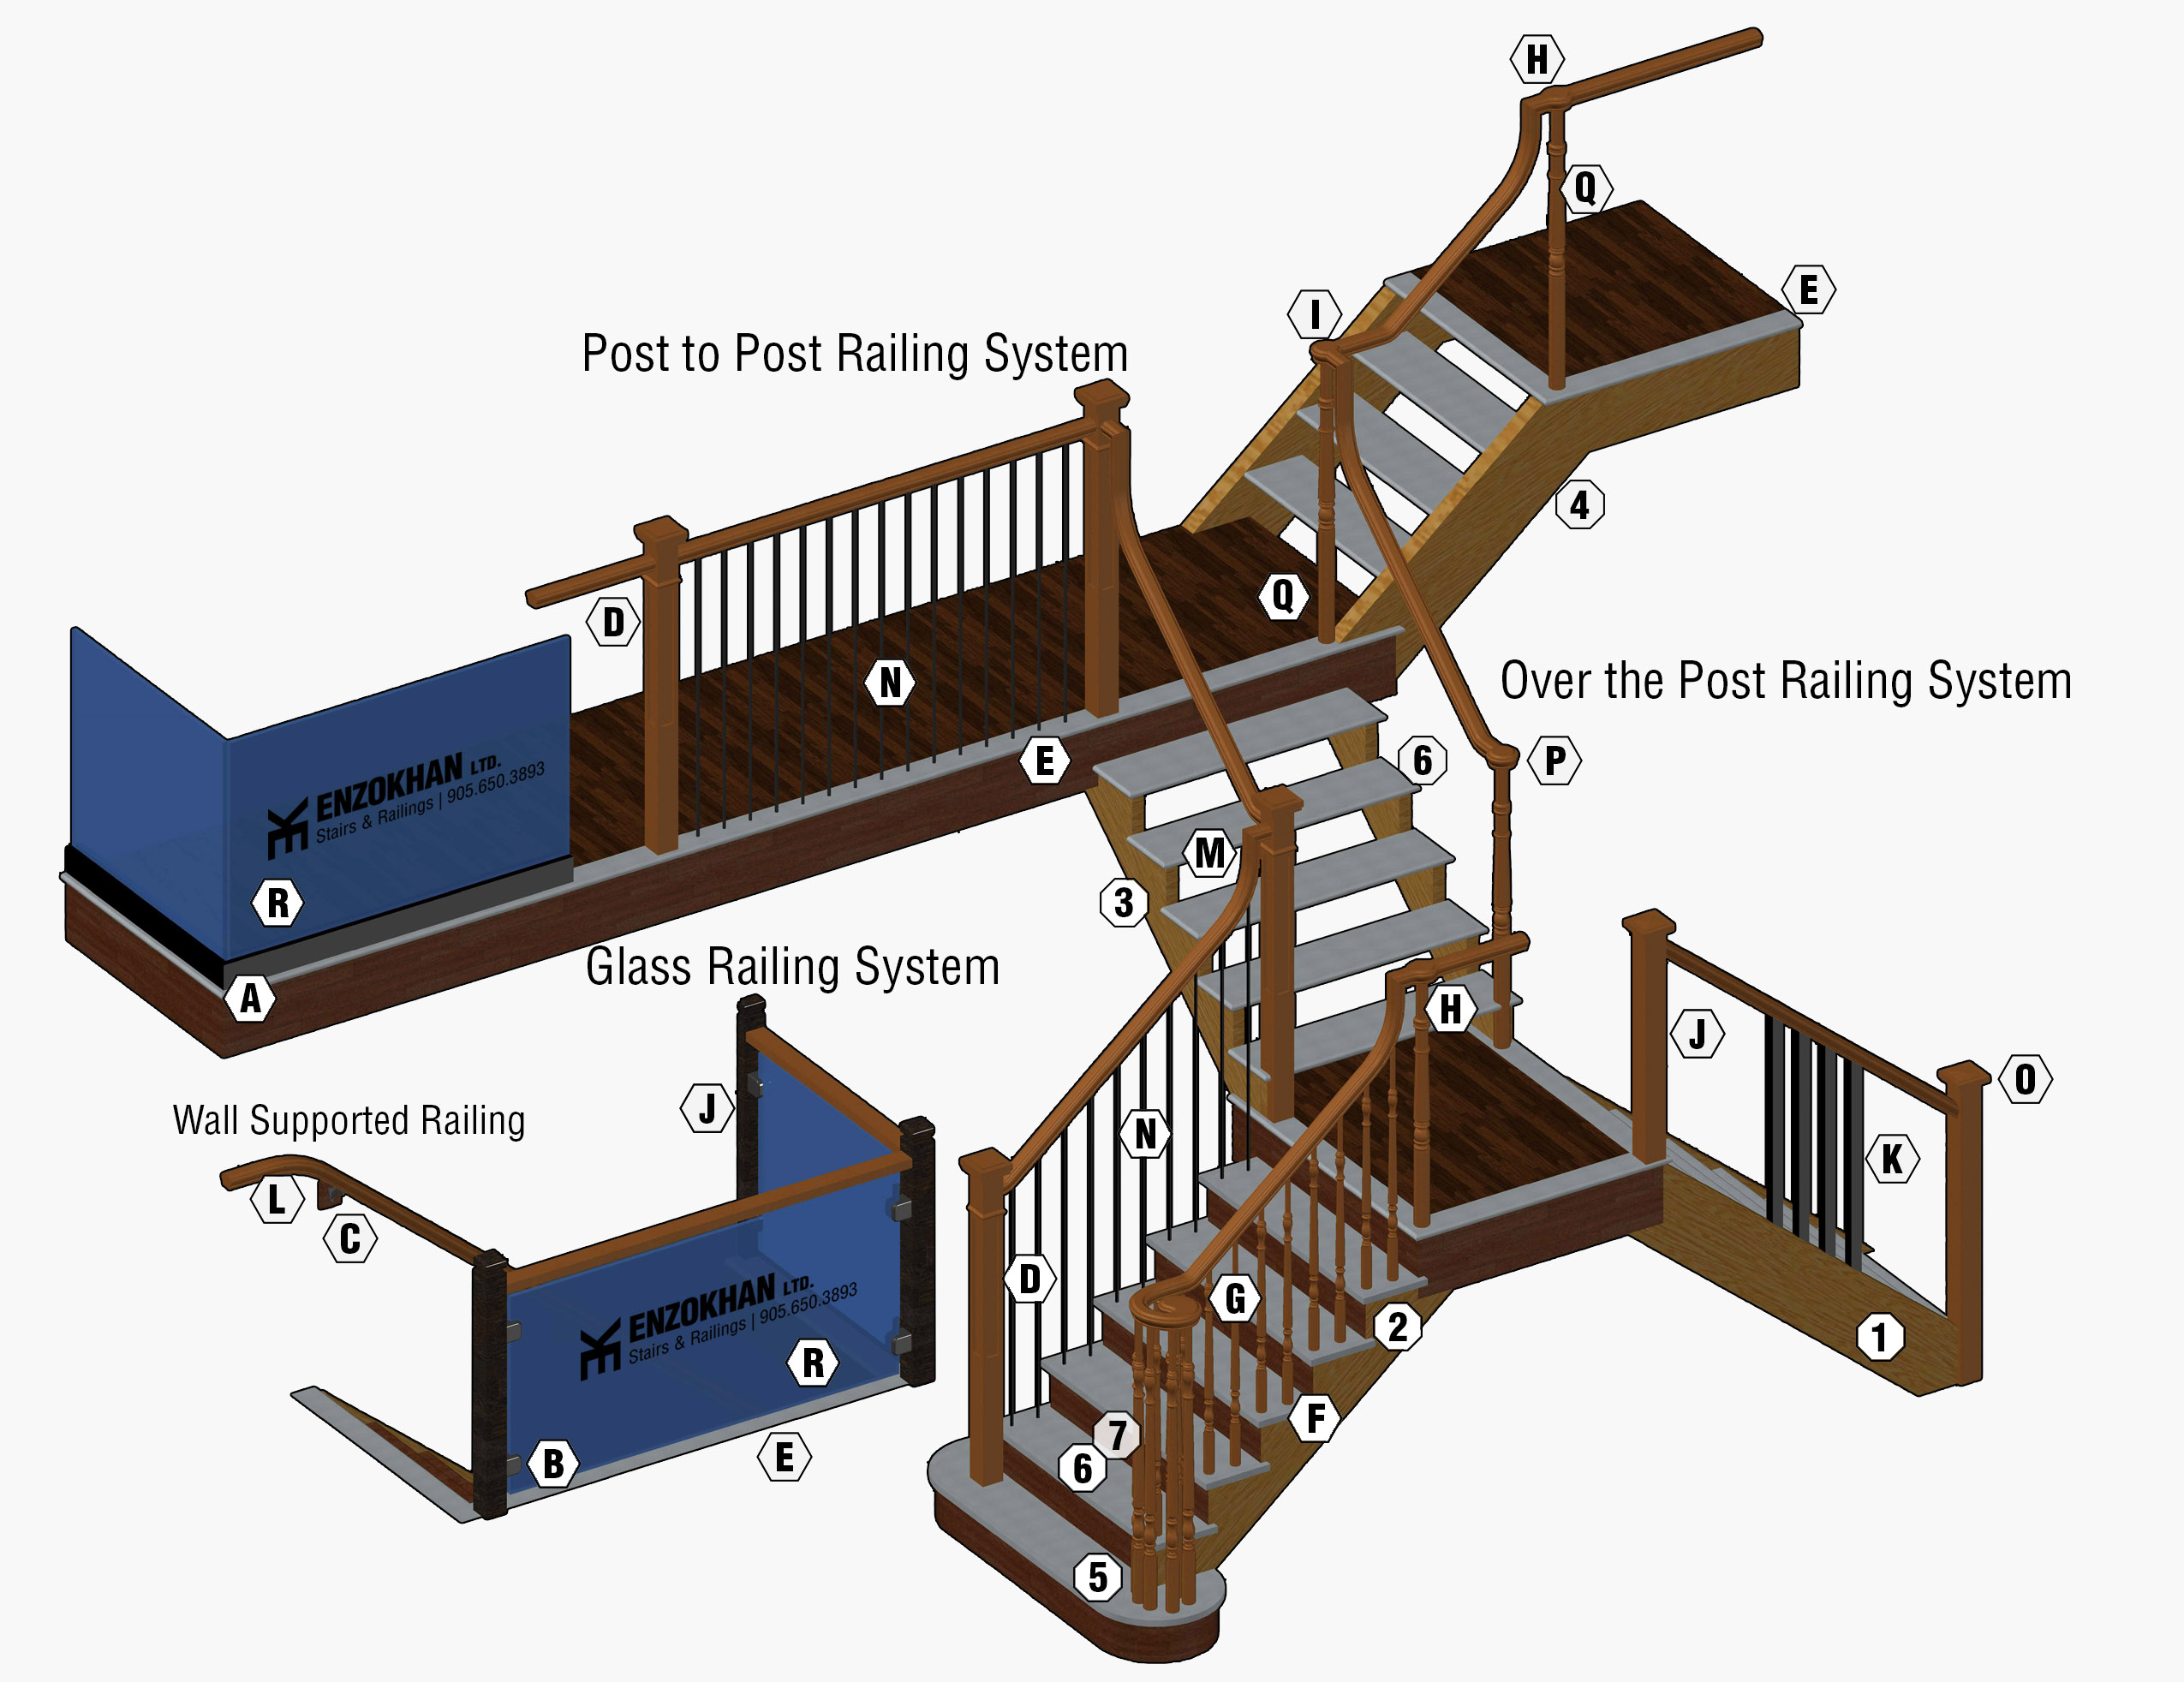 stair railing parts diagram ford radio wiring harness products  enzokhan ltd stairs and railings